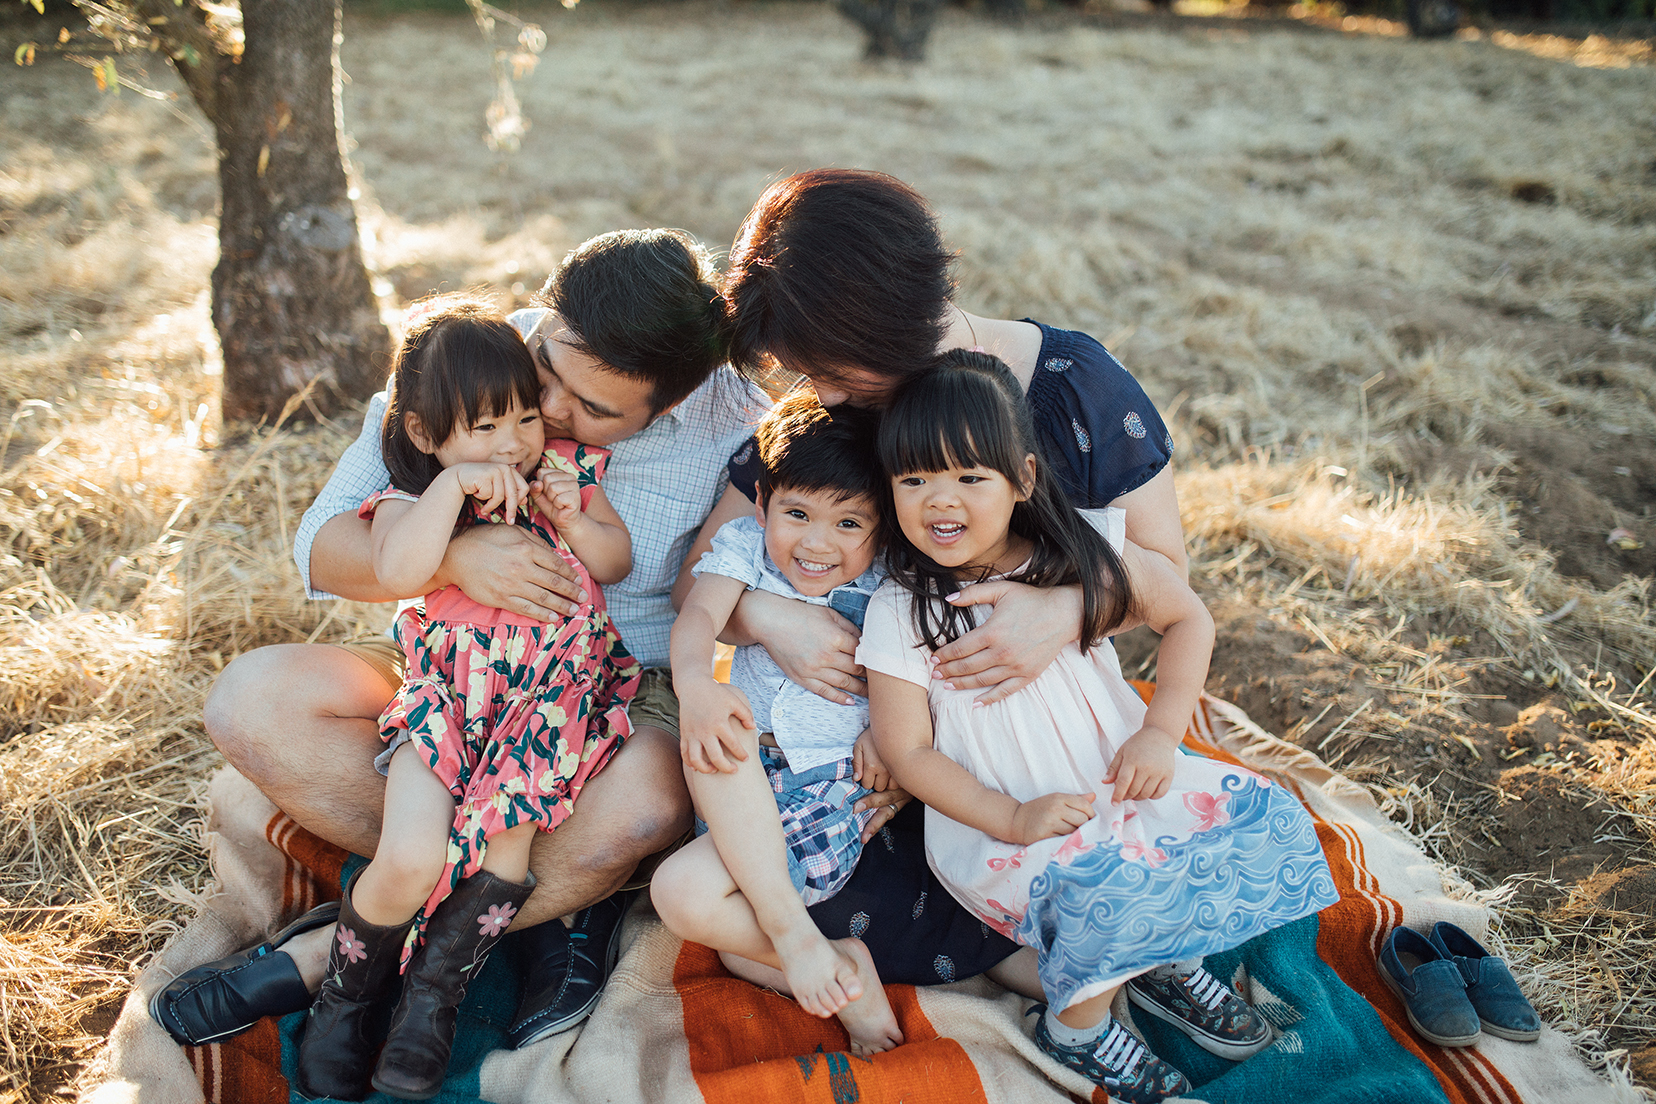 The most important thing in the world is familyand love. - Click cute triplets for more.